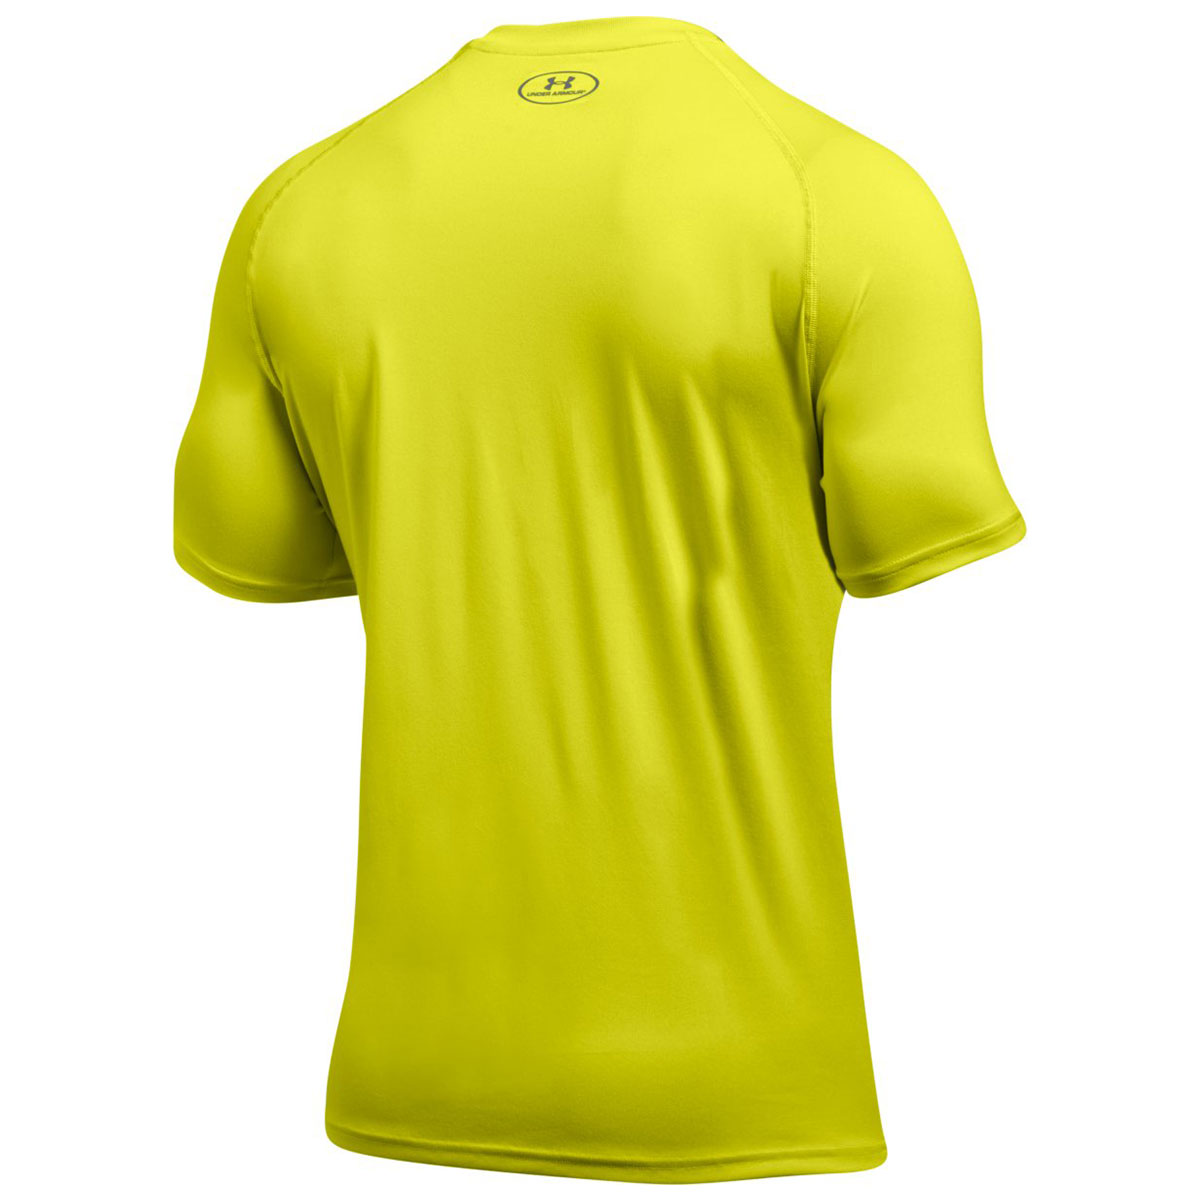 Under-Armour-Mens-UA-Tech-SS-T-Shirt-HeatGear-Training-31-OFF-RRP thumbnail 85